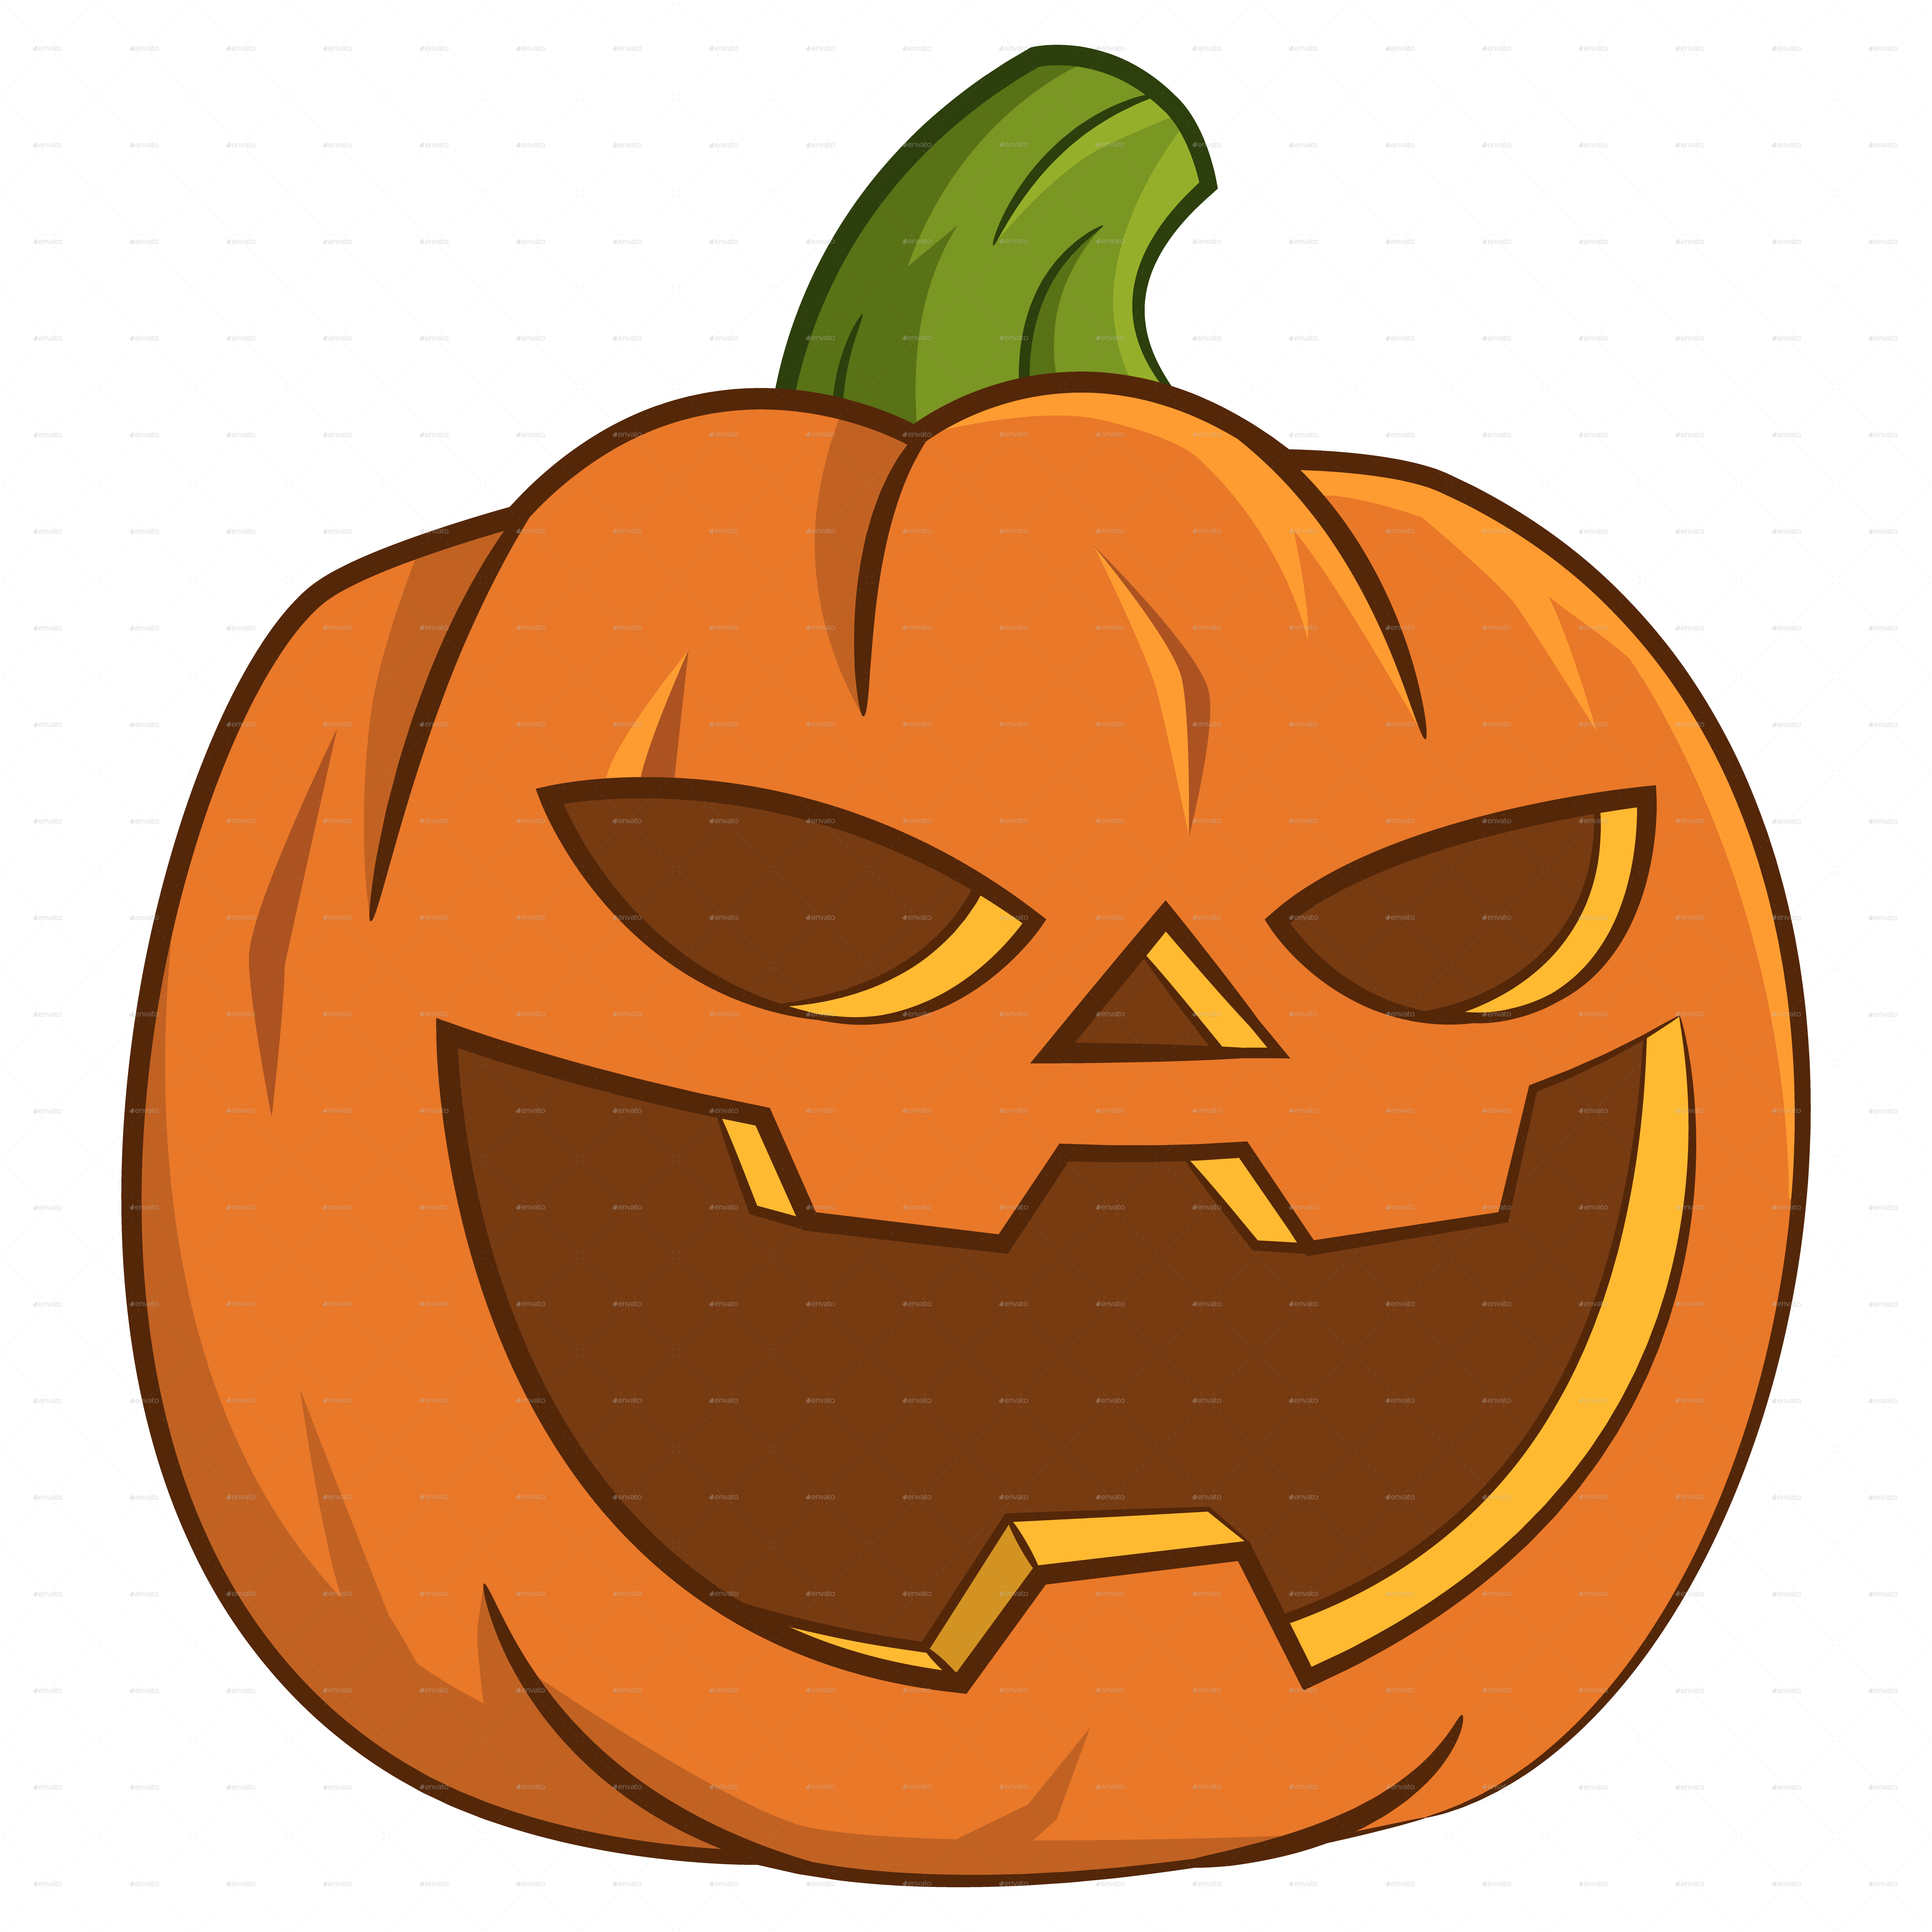 Pumpkin png clipart for photoshop graphic black and white library Pumpkin for Halloween. by Gatts | GraphicRiver graphic black and white library